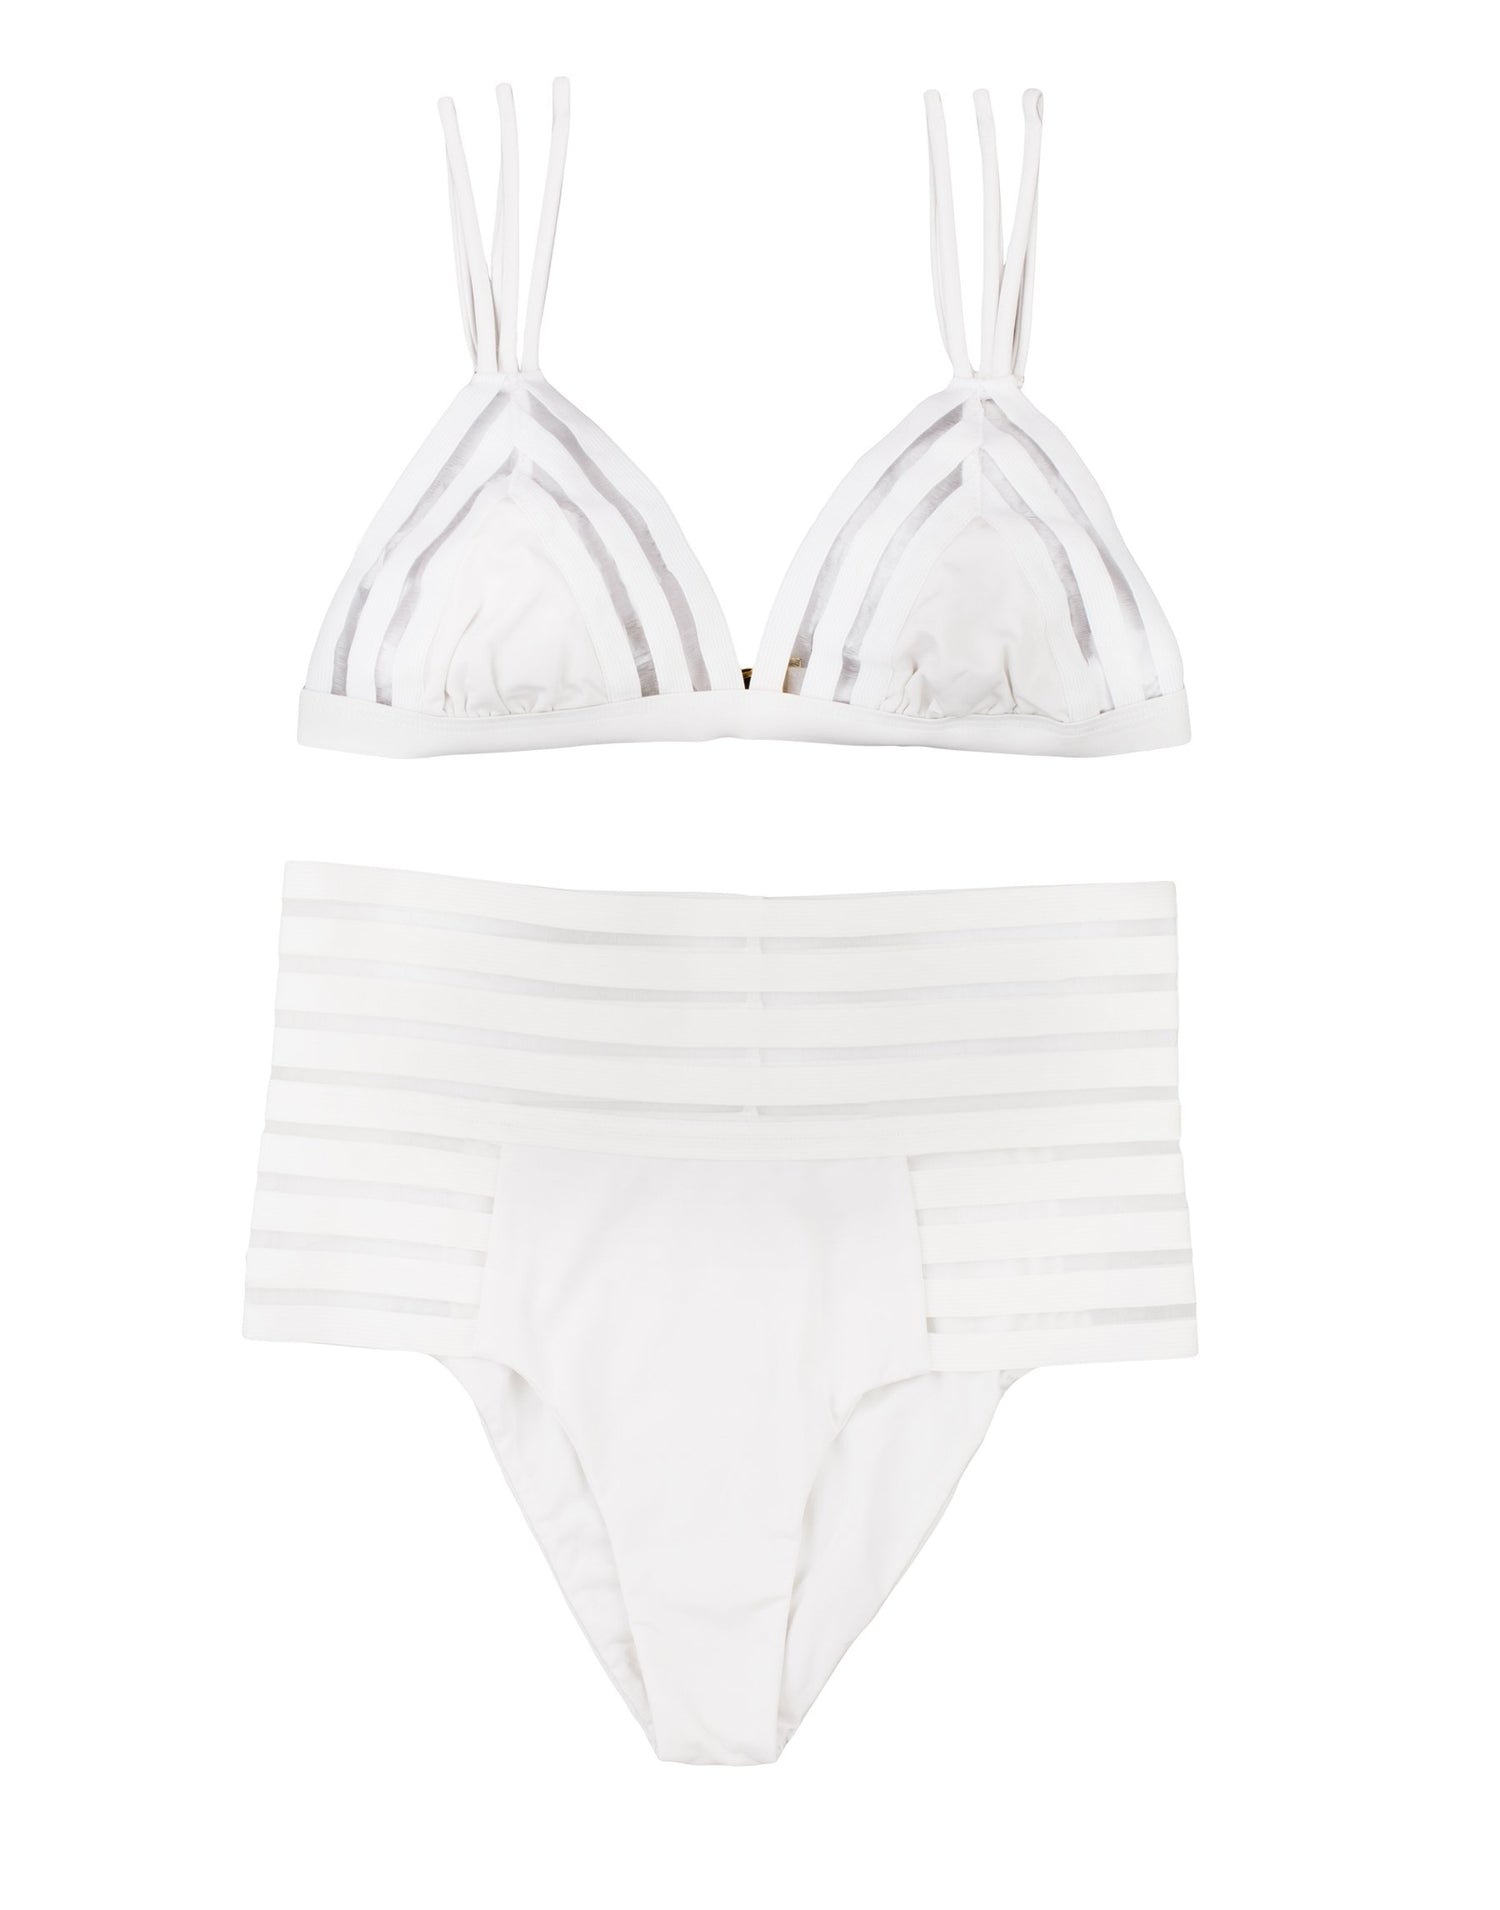 Sheer Addiction High Waist Bikini Bottom in White with Sheer Elastic Stripes - product view